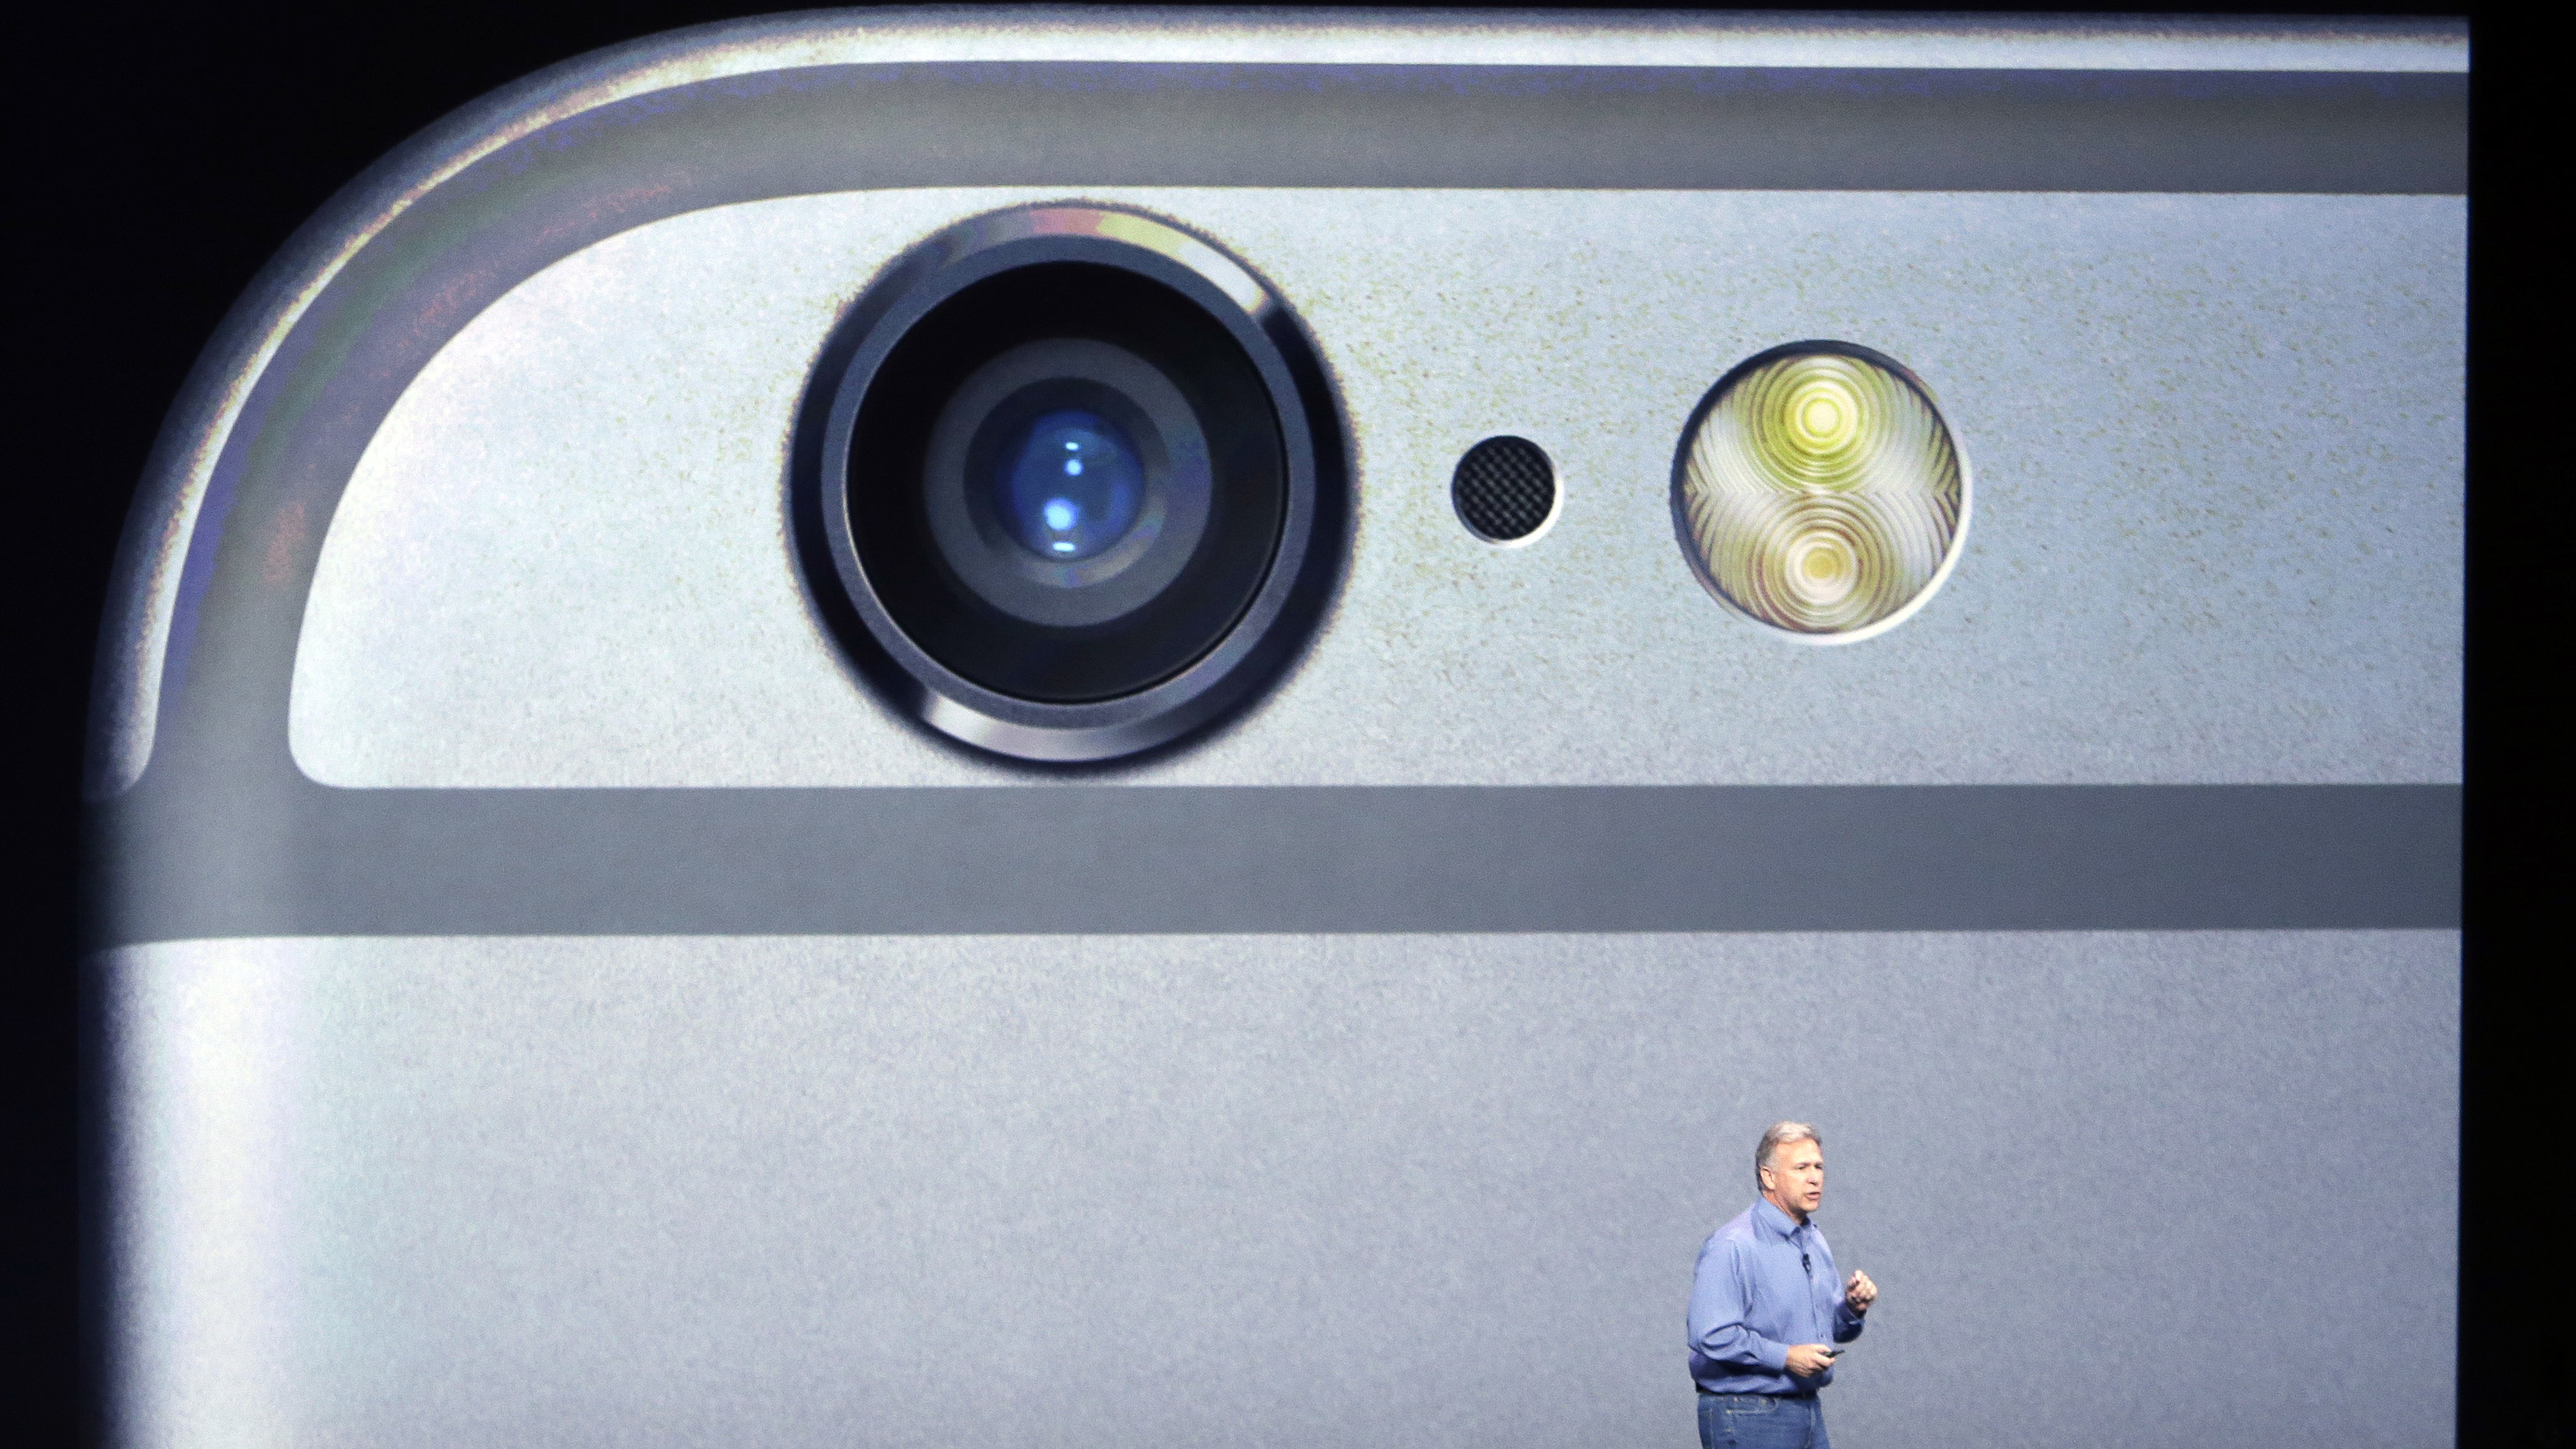 Phil Schiller, Apple's senior vice president of worldwide product marketing, discusses the camera features on the new iPhone 6 and iPhone 6 plus on Tuesday, Sept. 9, 2014, in Cupertino, Calif. (AP Photo/Marcio Jose Sanchez)